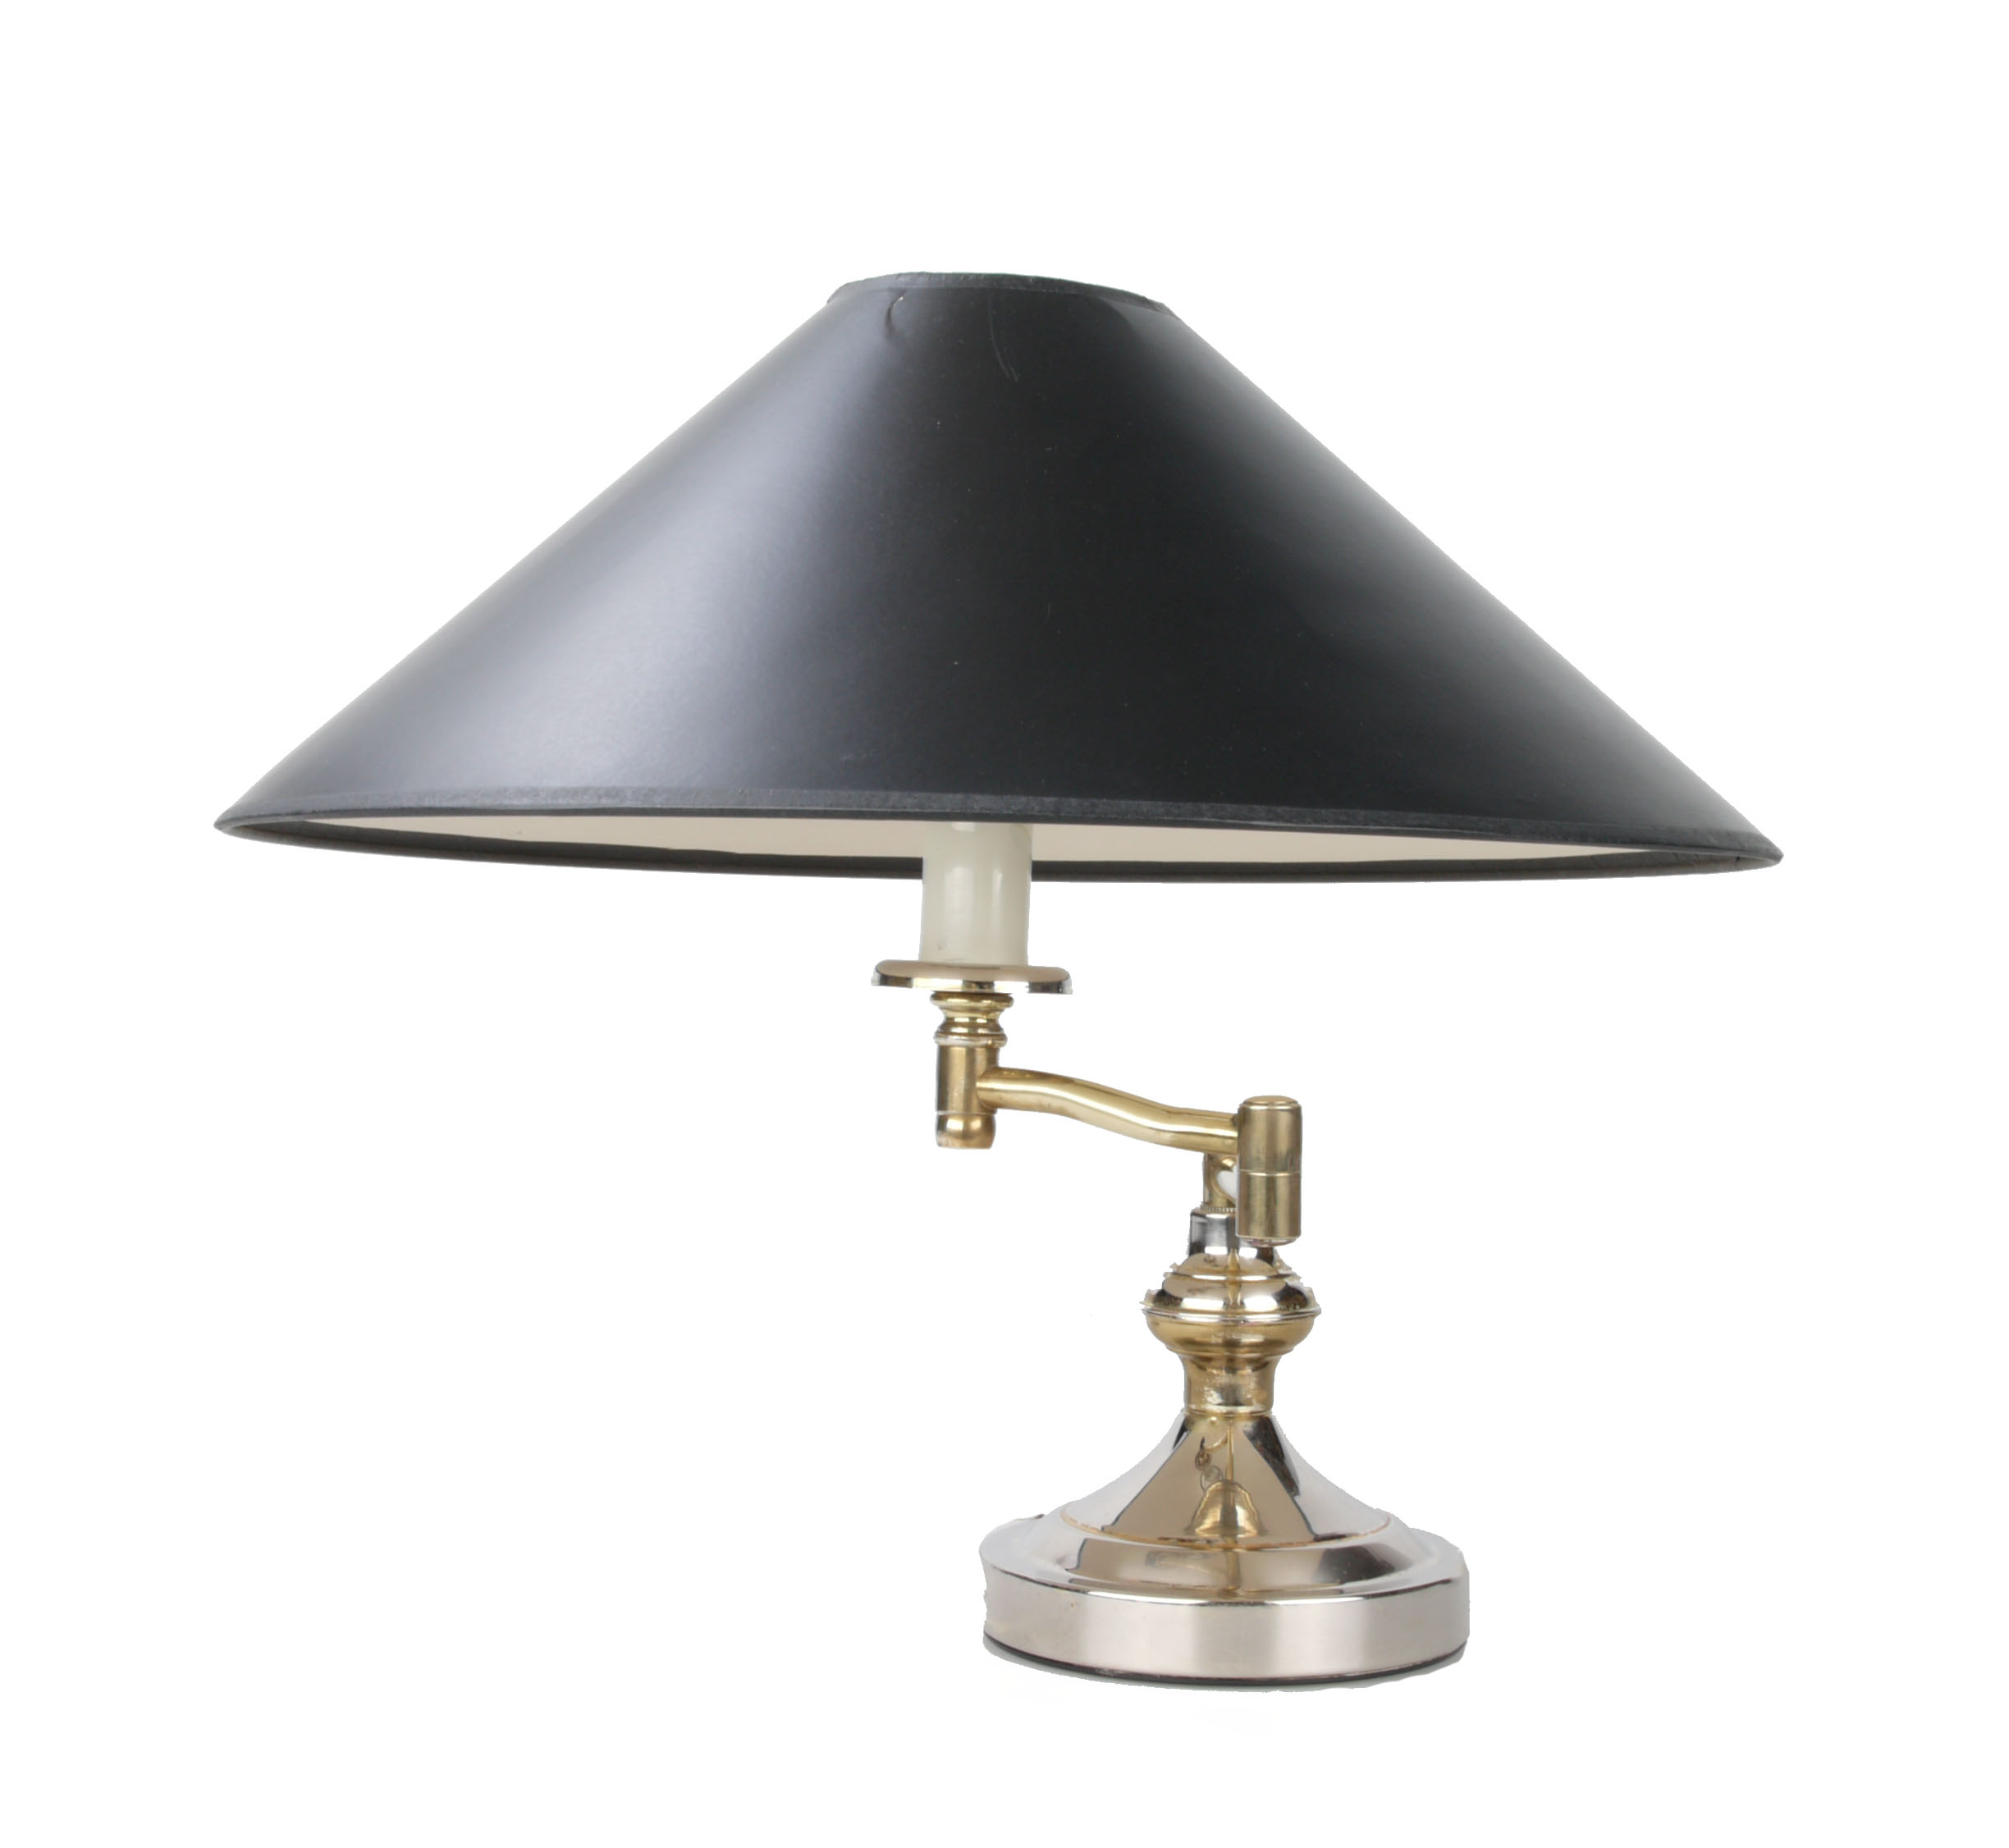 Heyco Brass Swing Arm Table Lamp   Image 2 Of 10